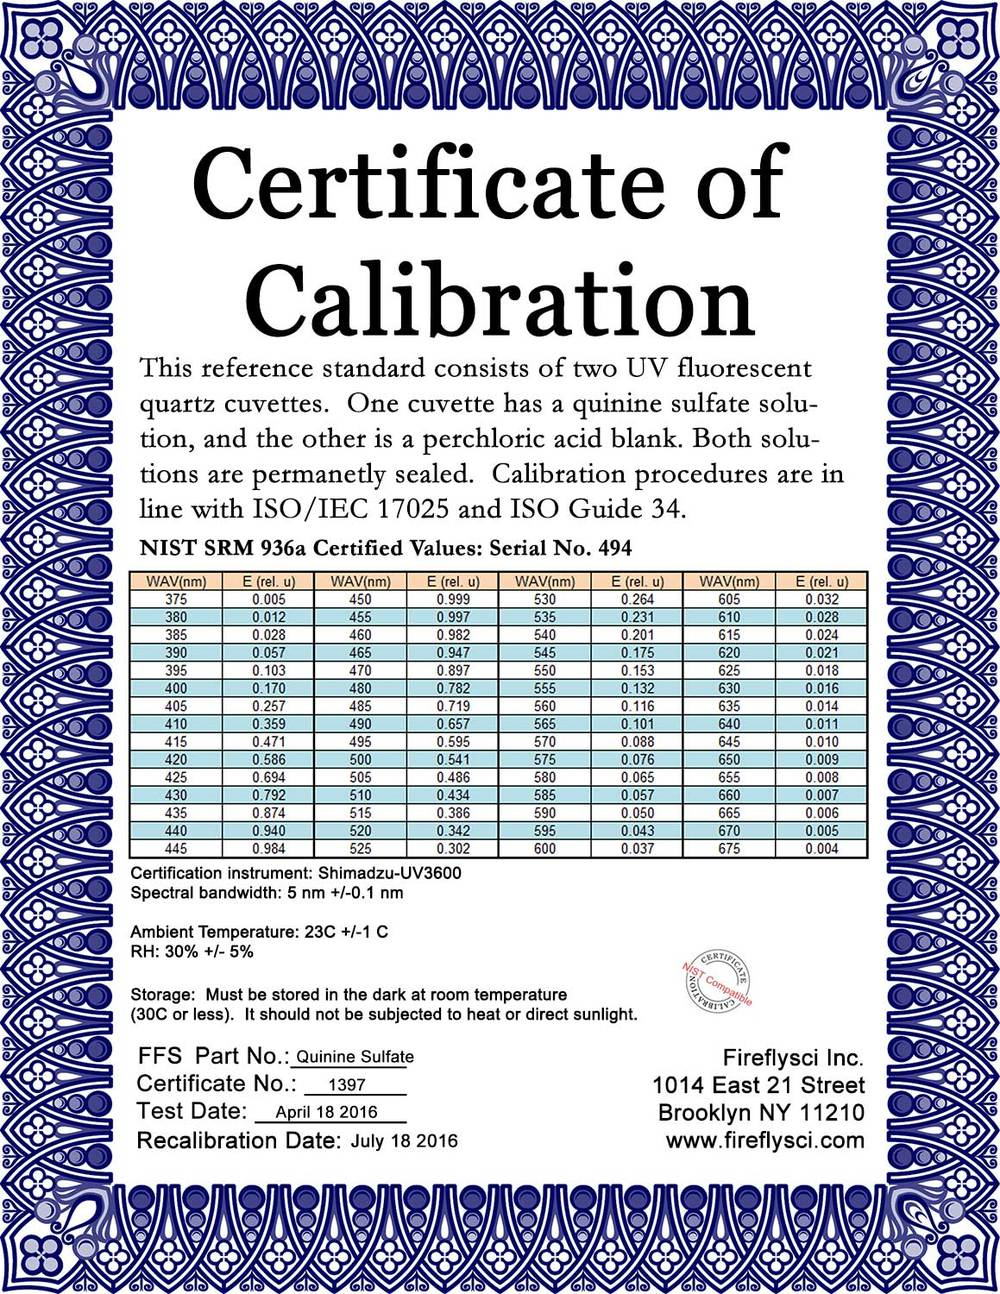 SRM-QS Sample Certificate of Calibration